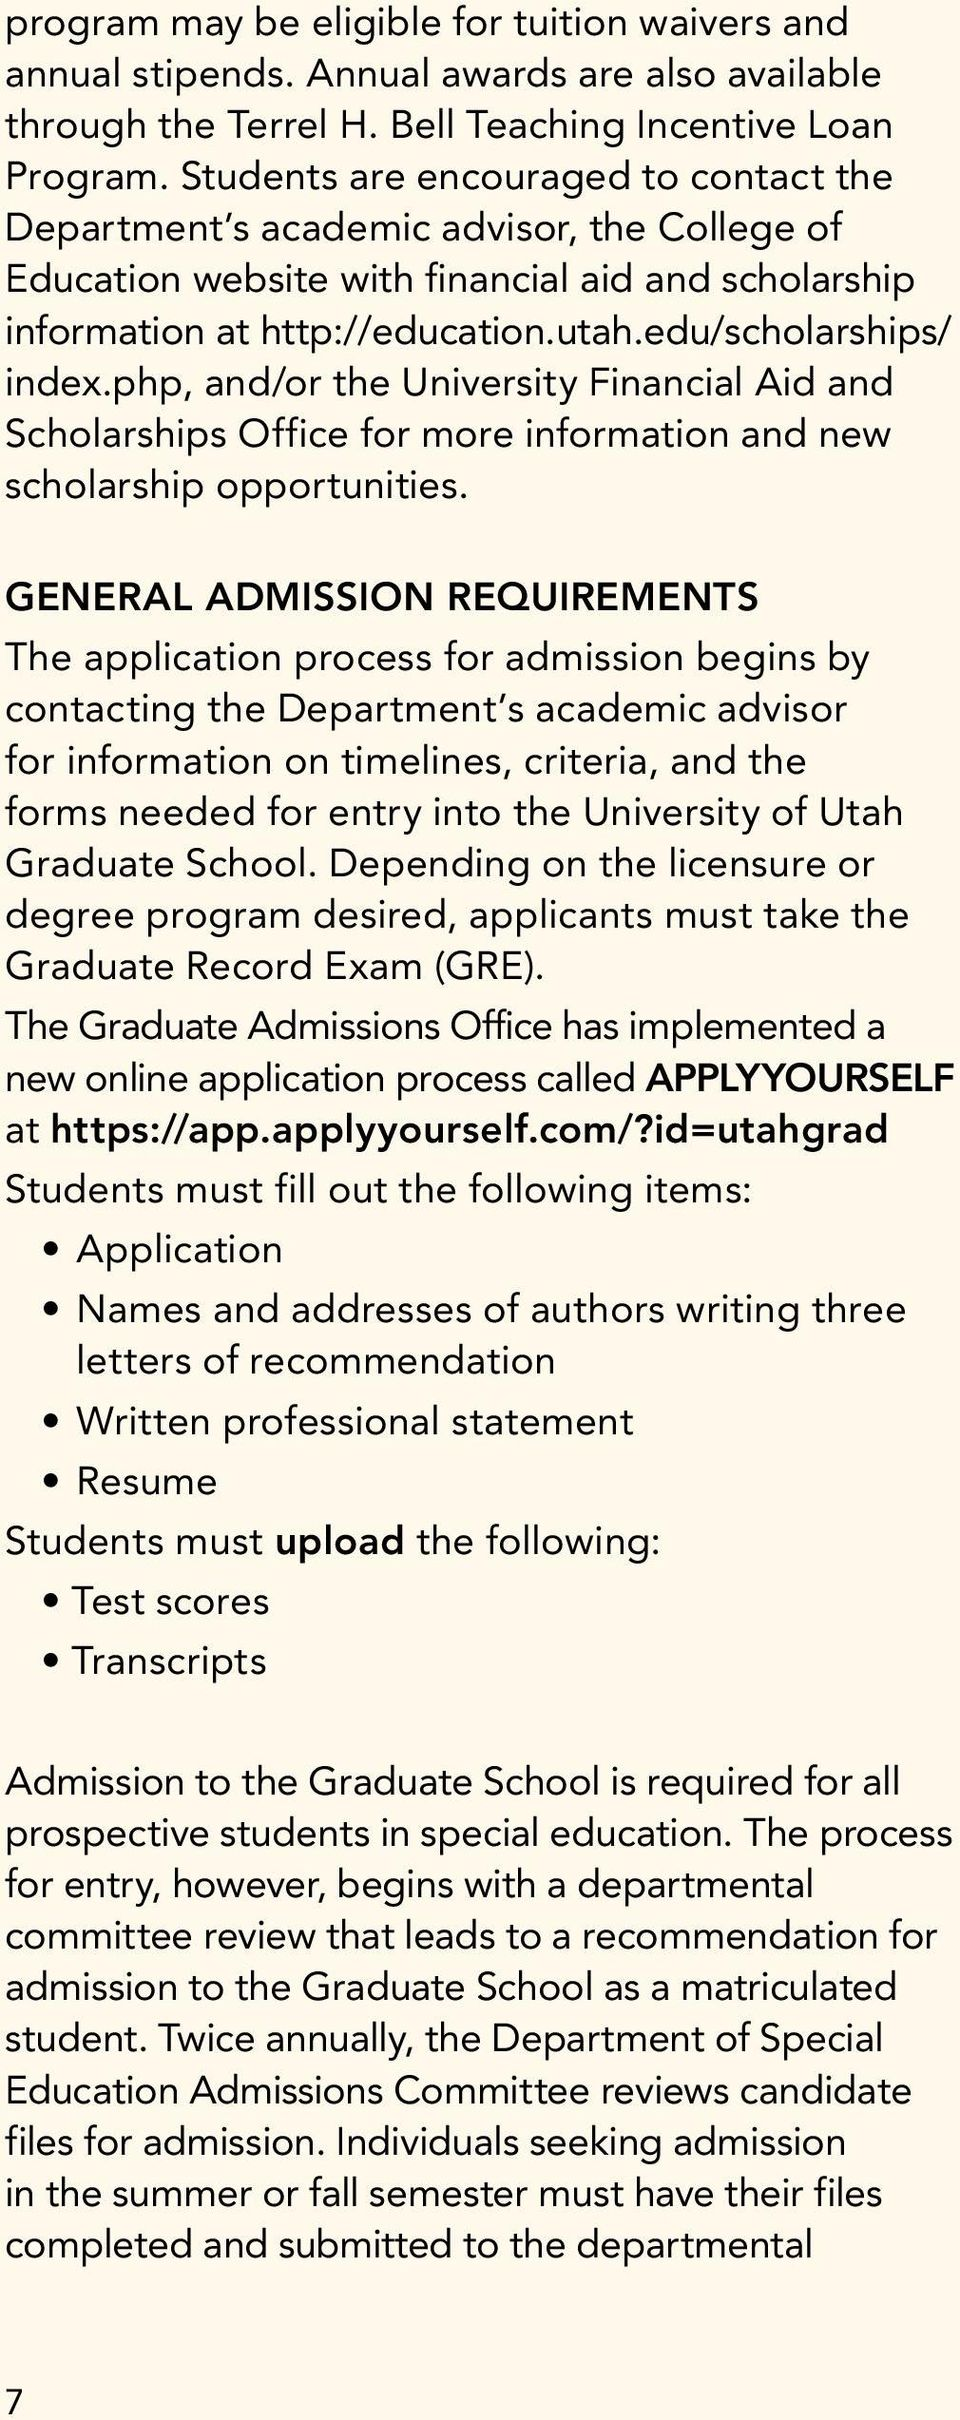 php, and/or the University Financial Aid and Scholarships Office for more information and new scholarship opportunities.